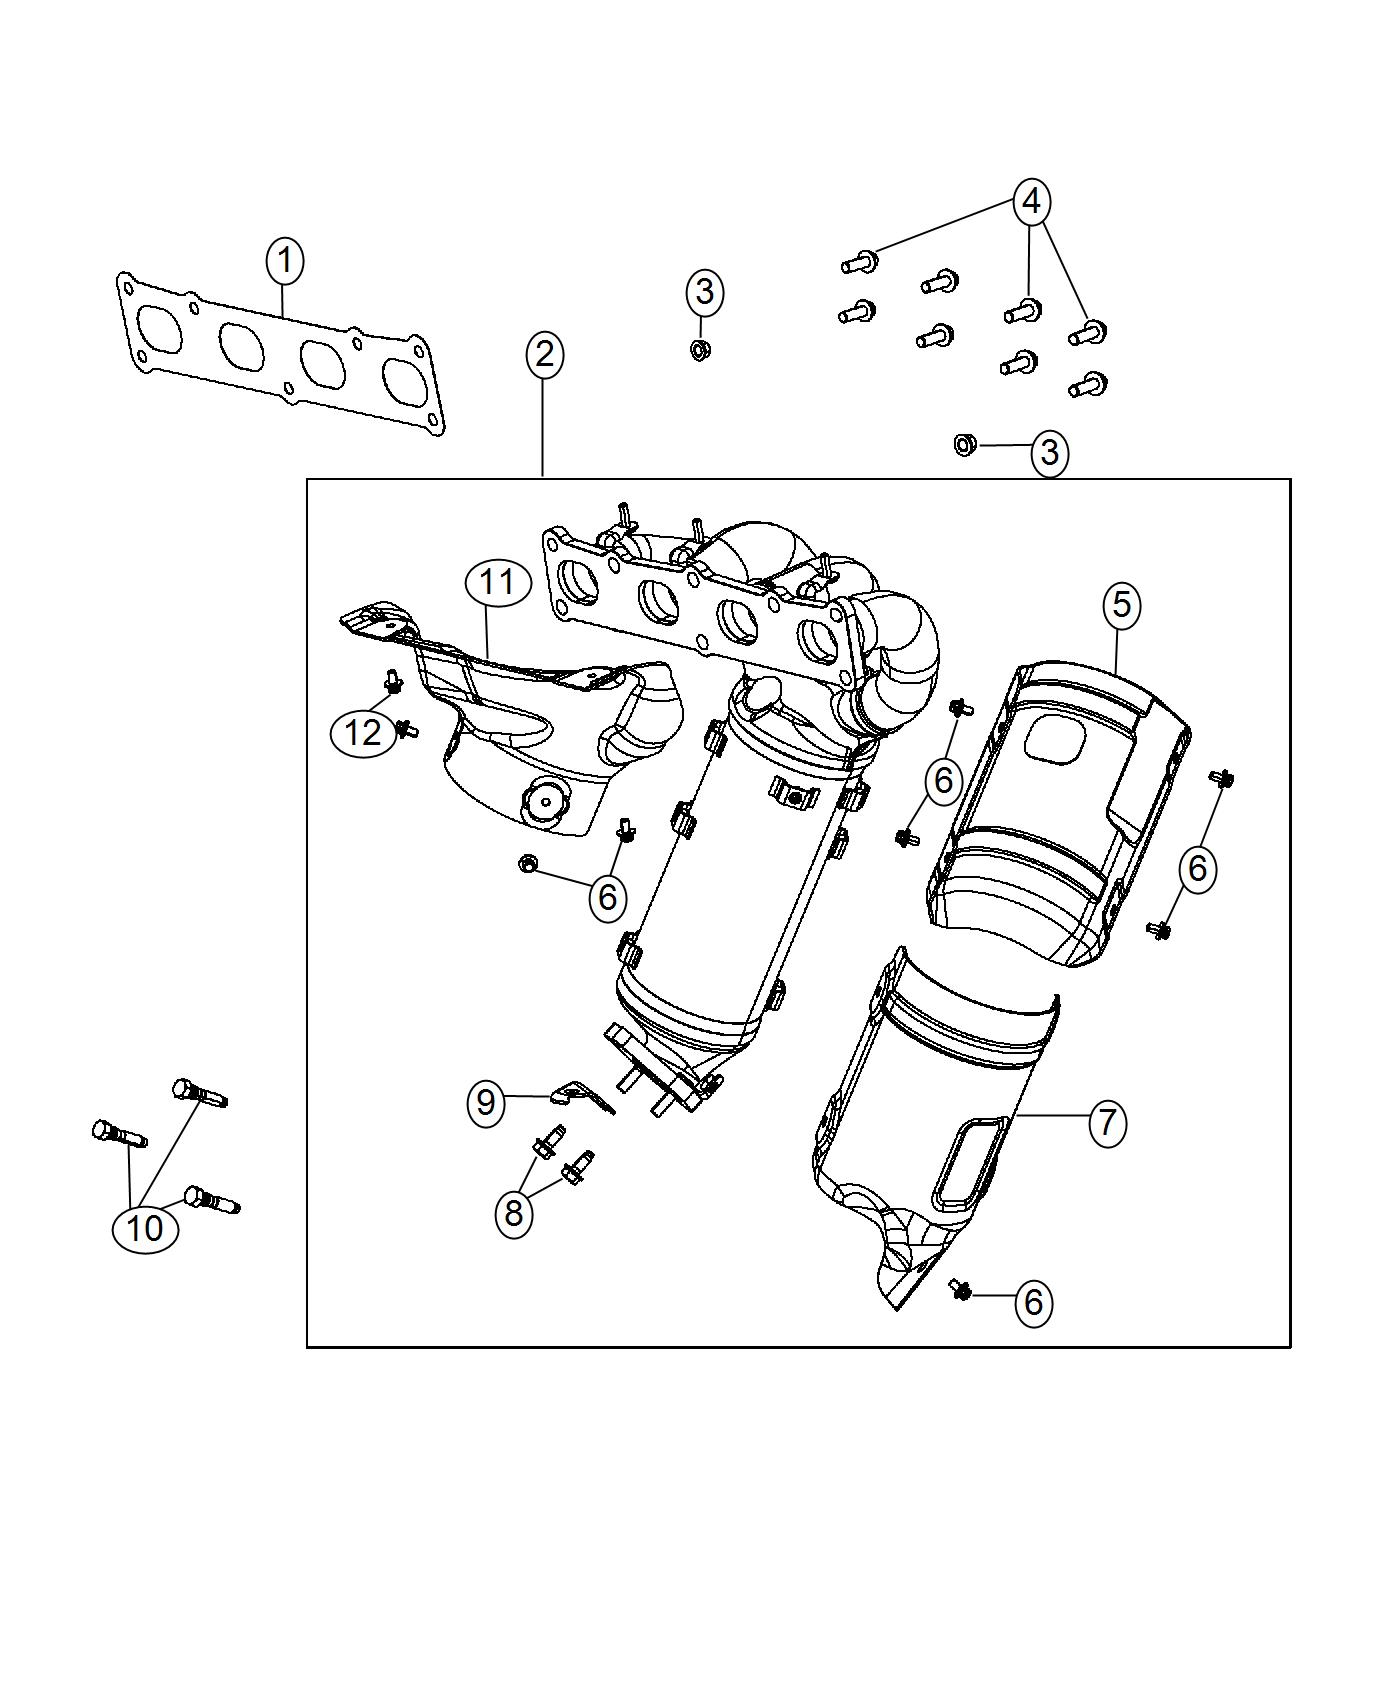 Jeep Renegade Manifold Used For Exhaust And